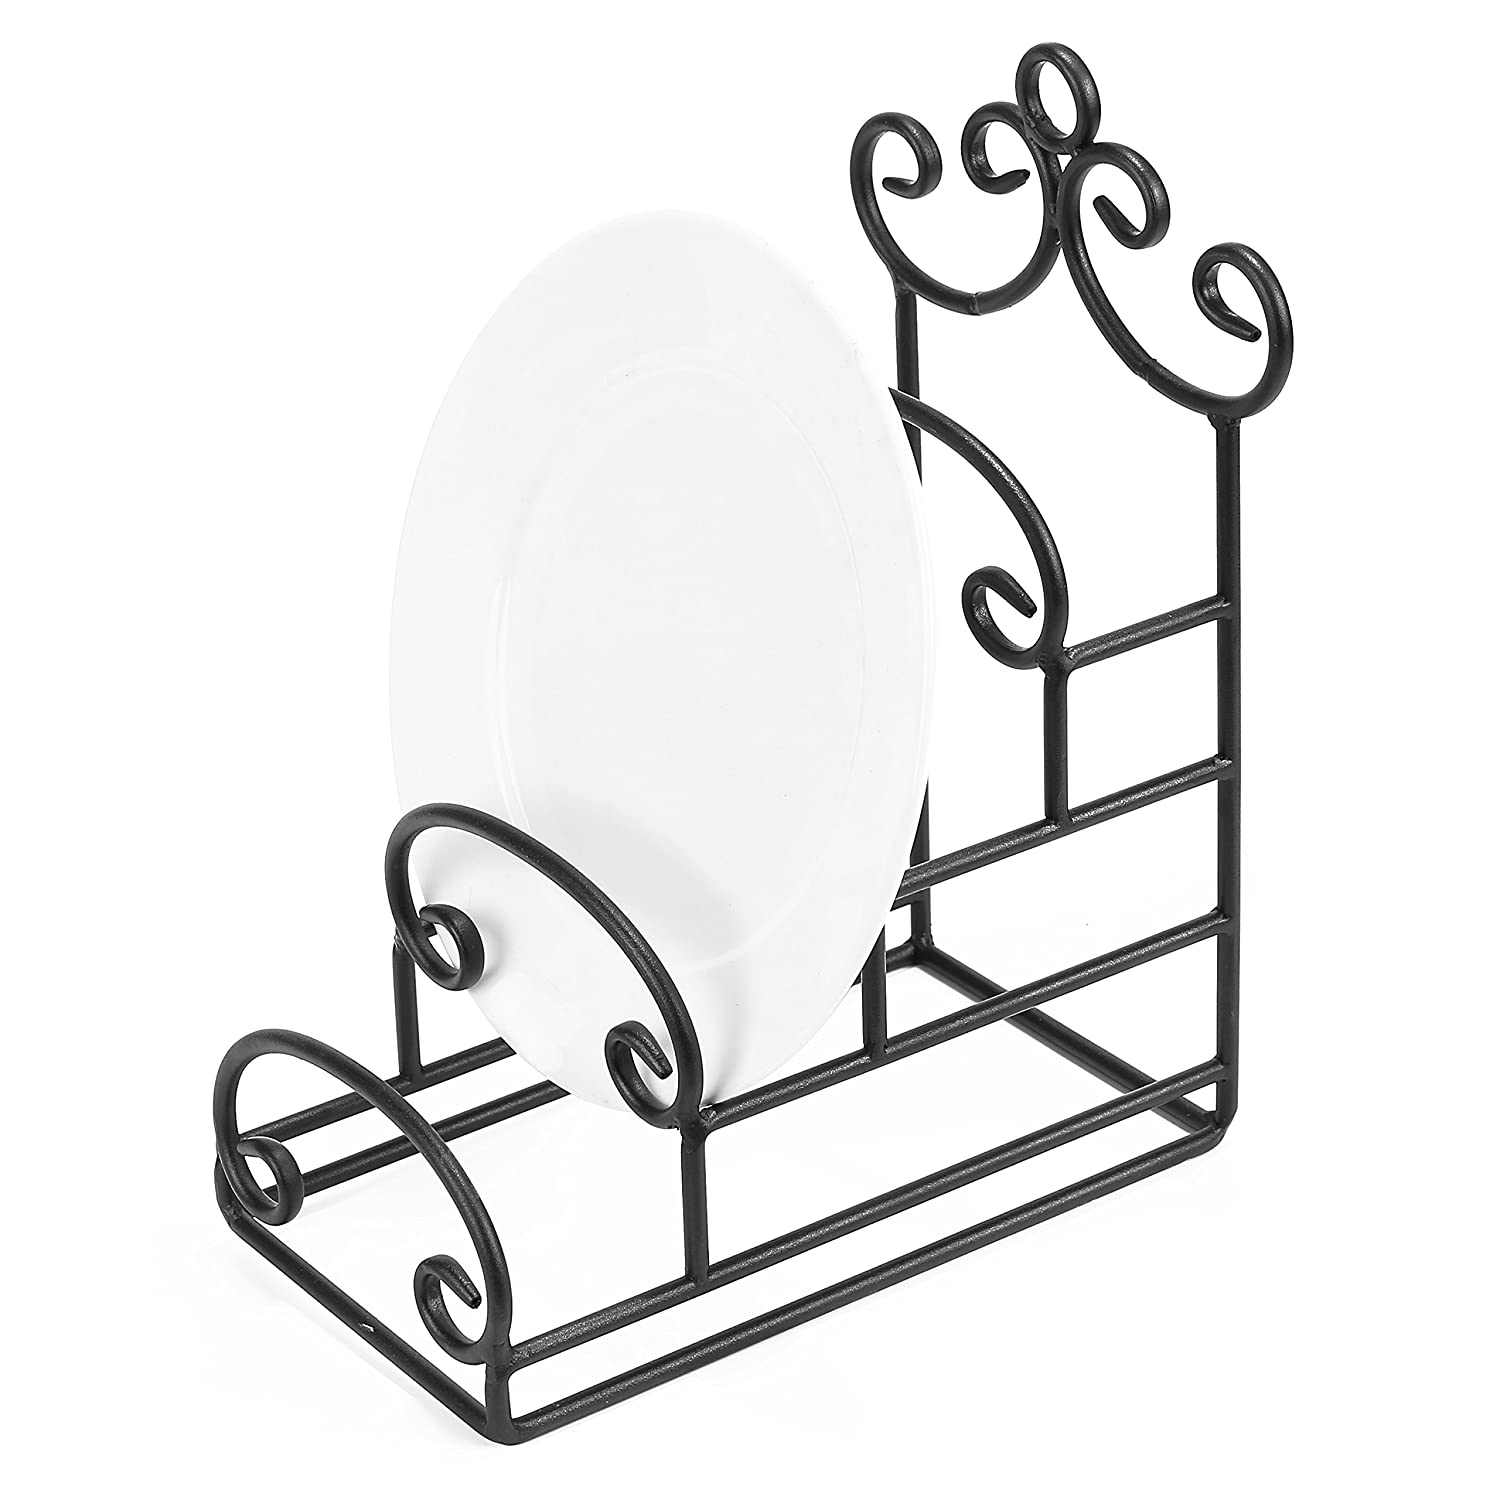 MyGift 4-Tier Vintage-Style Metal Scrollwork Plate Display Stand